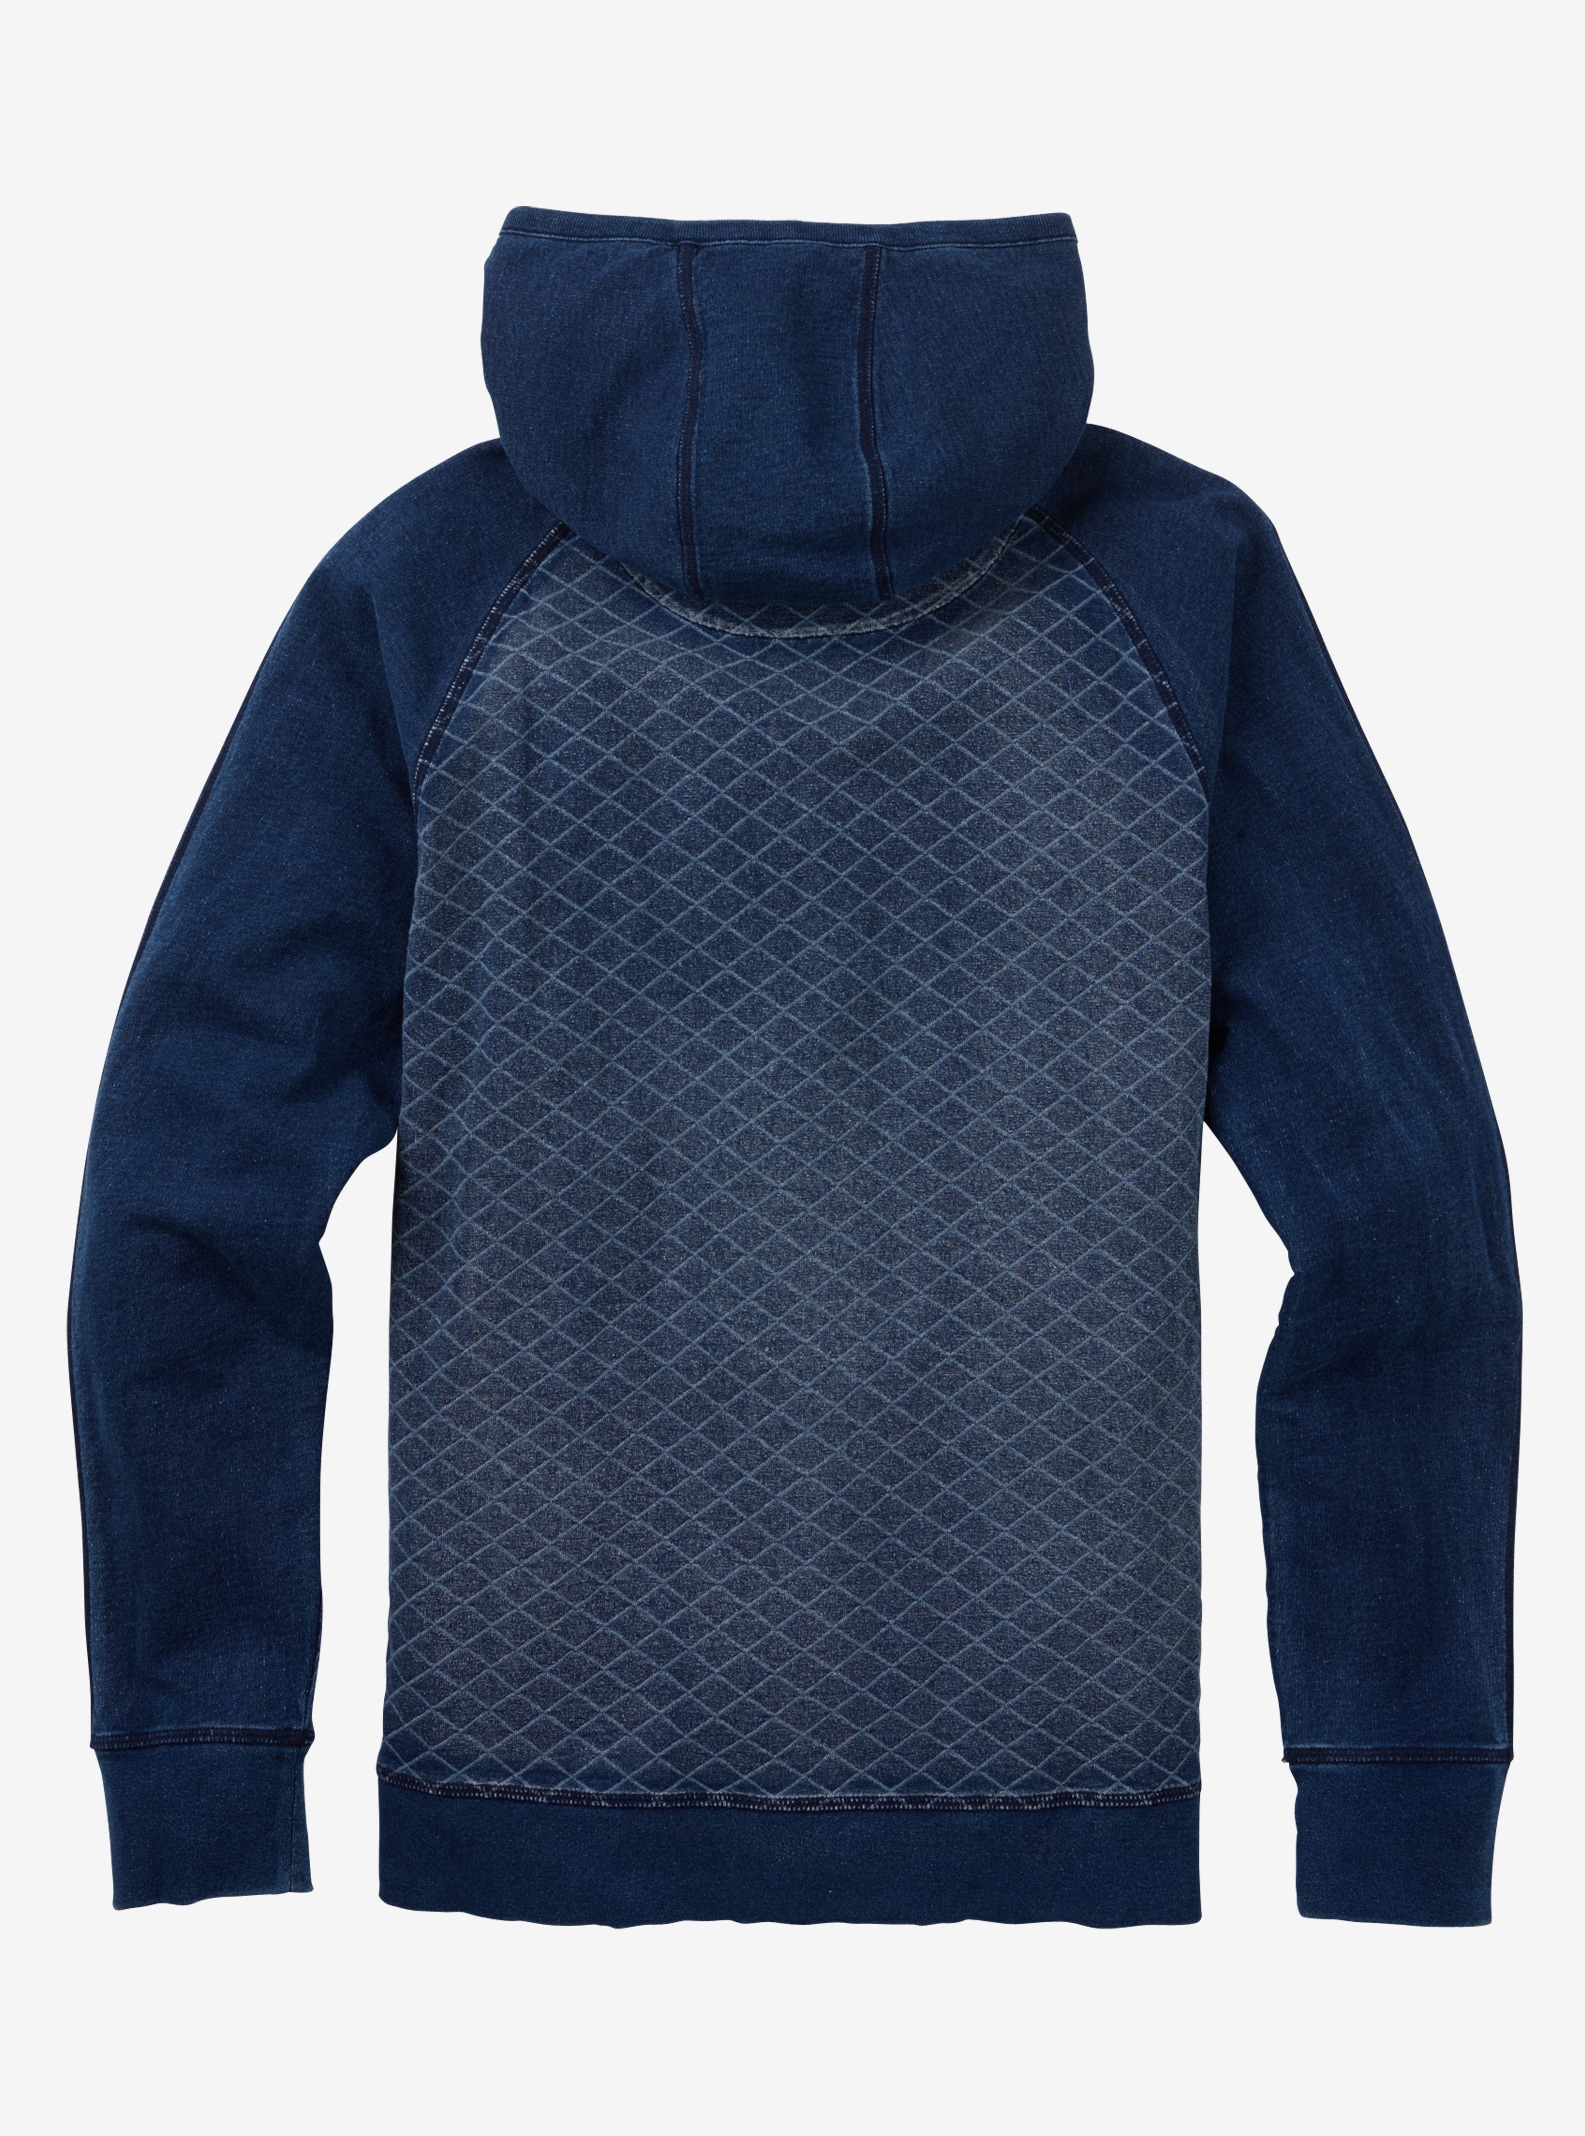 Burton Monhegan Fleece Full-Zip shown in Indigo